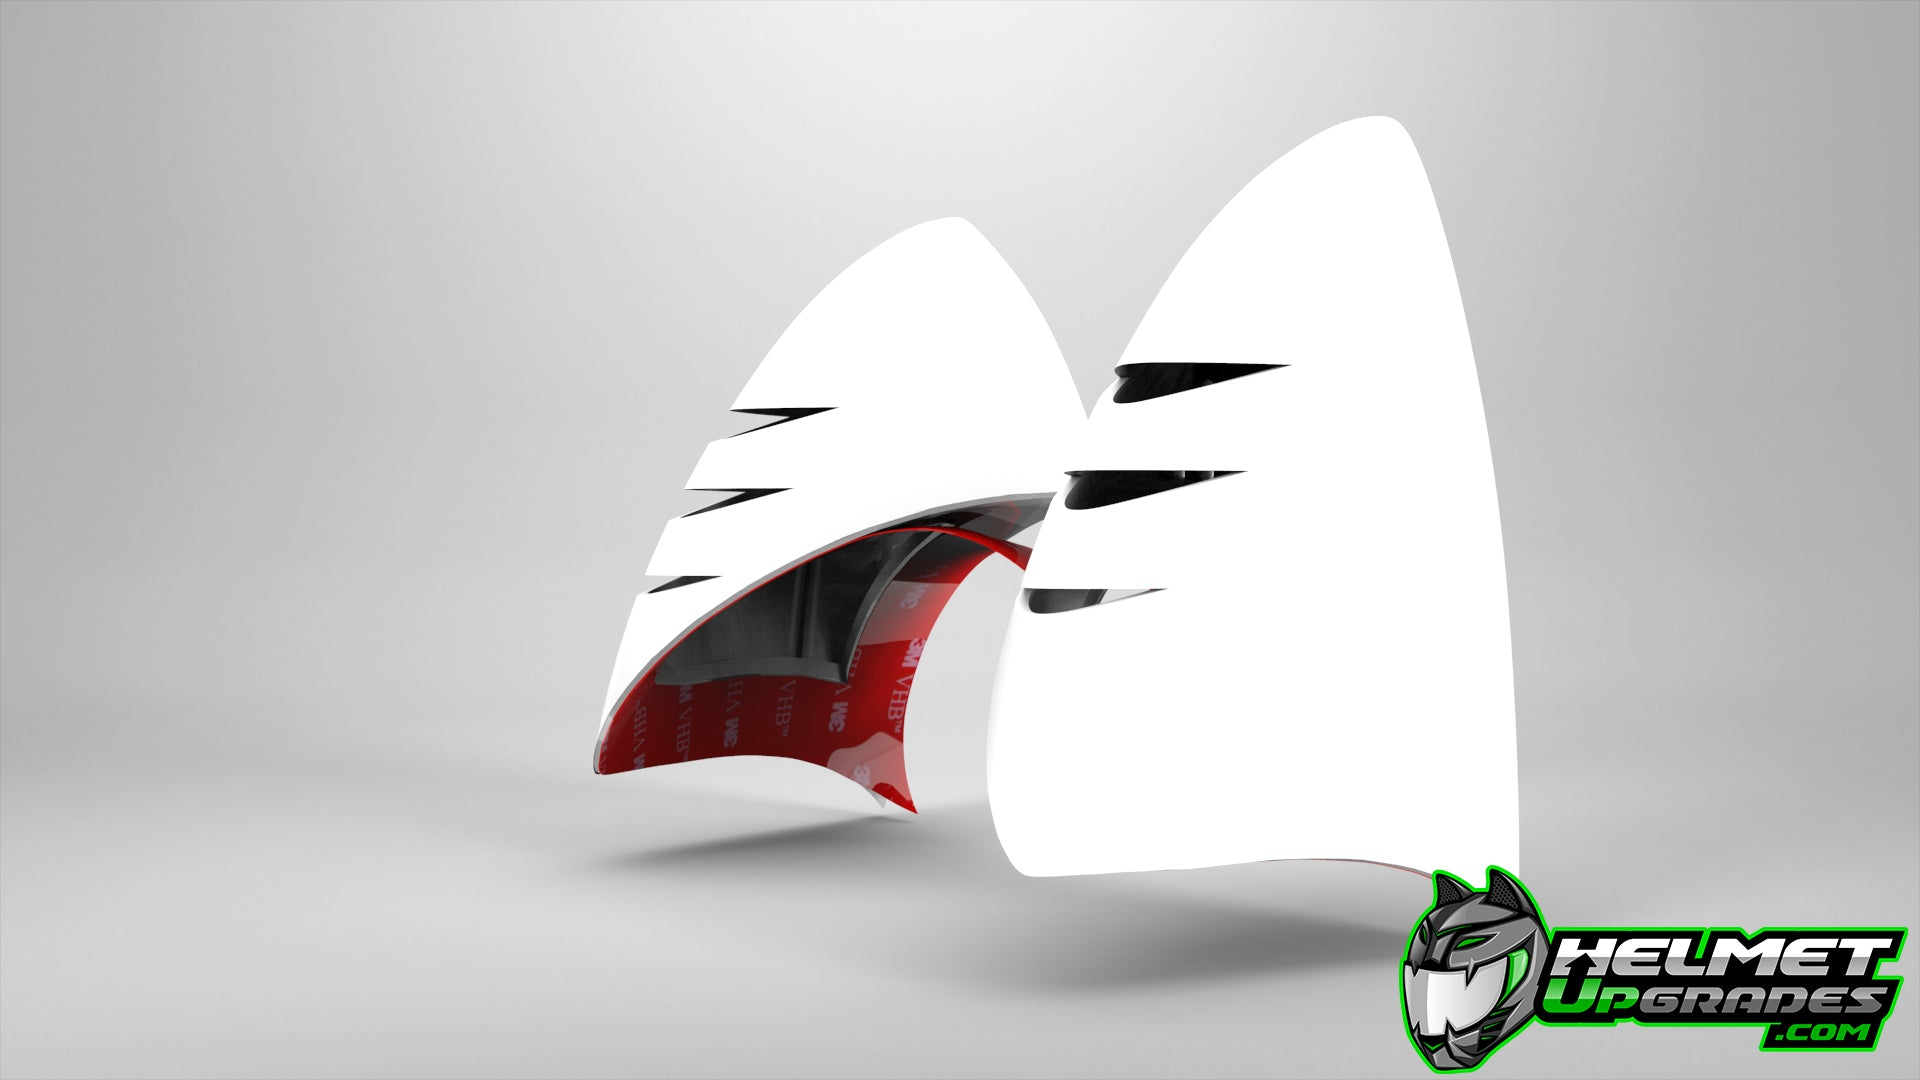 Cat Ear Helmet Upgrade: WHITE | Easy Peel-and-Stick Helmet Accessory with 5 Colored Decals included